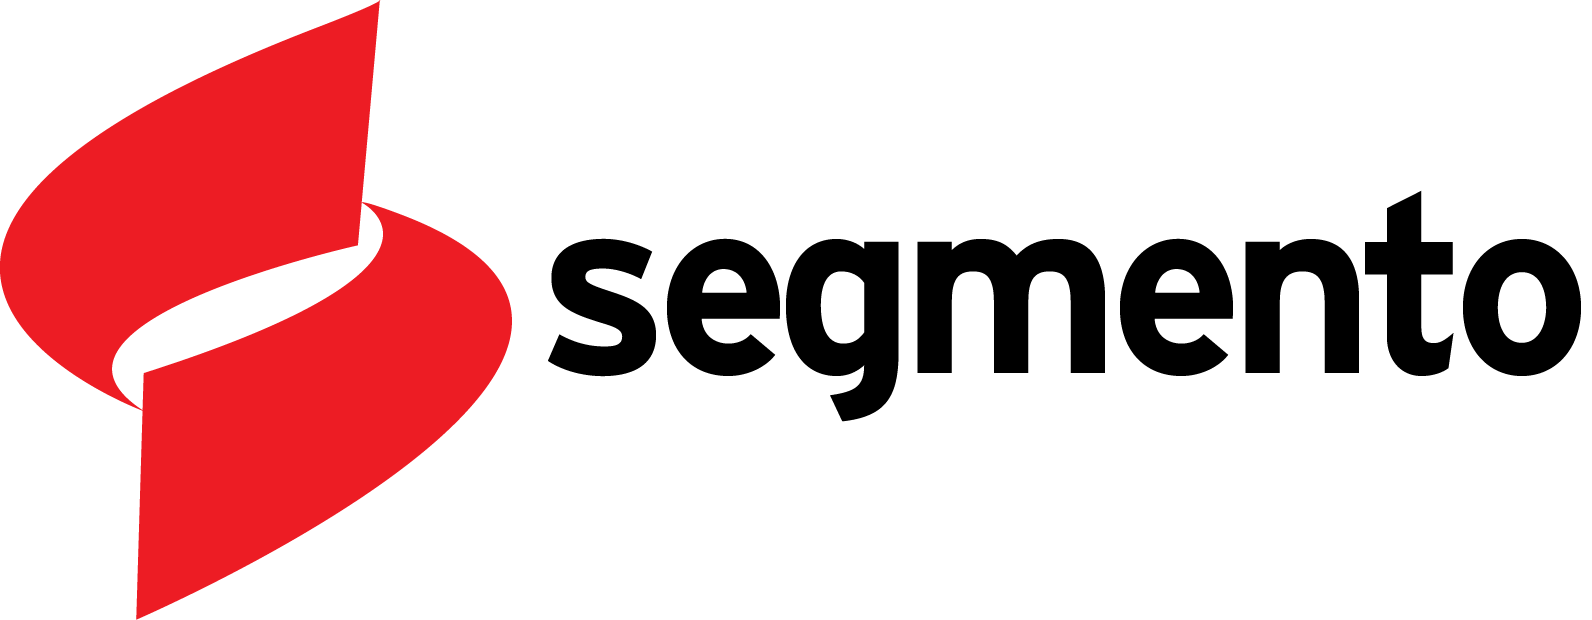 Logo_Segmento_horizontal_color-